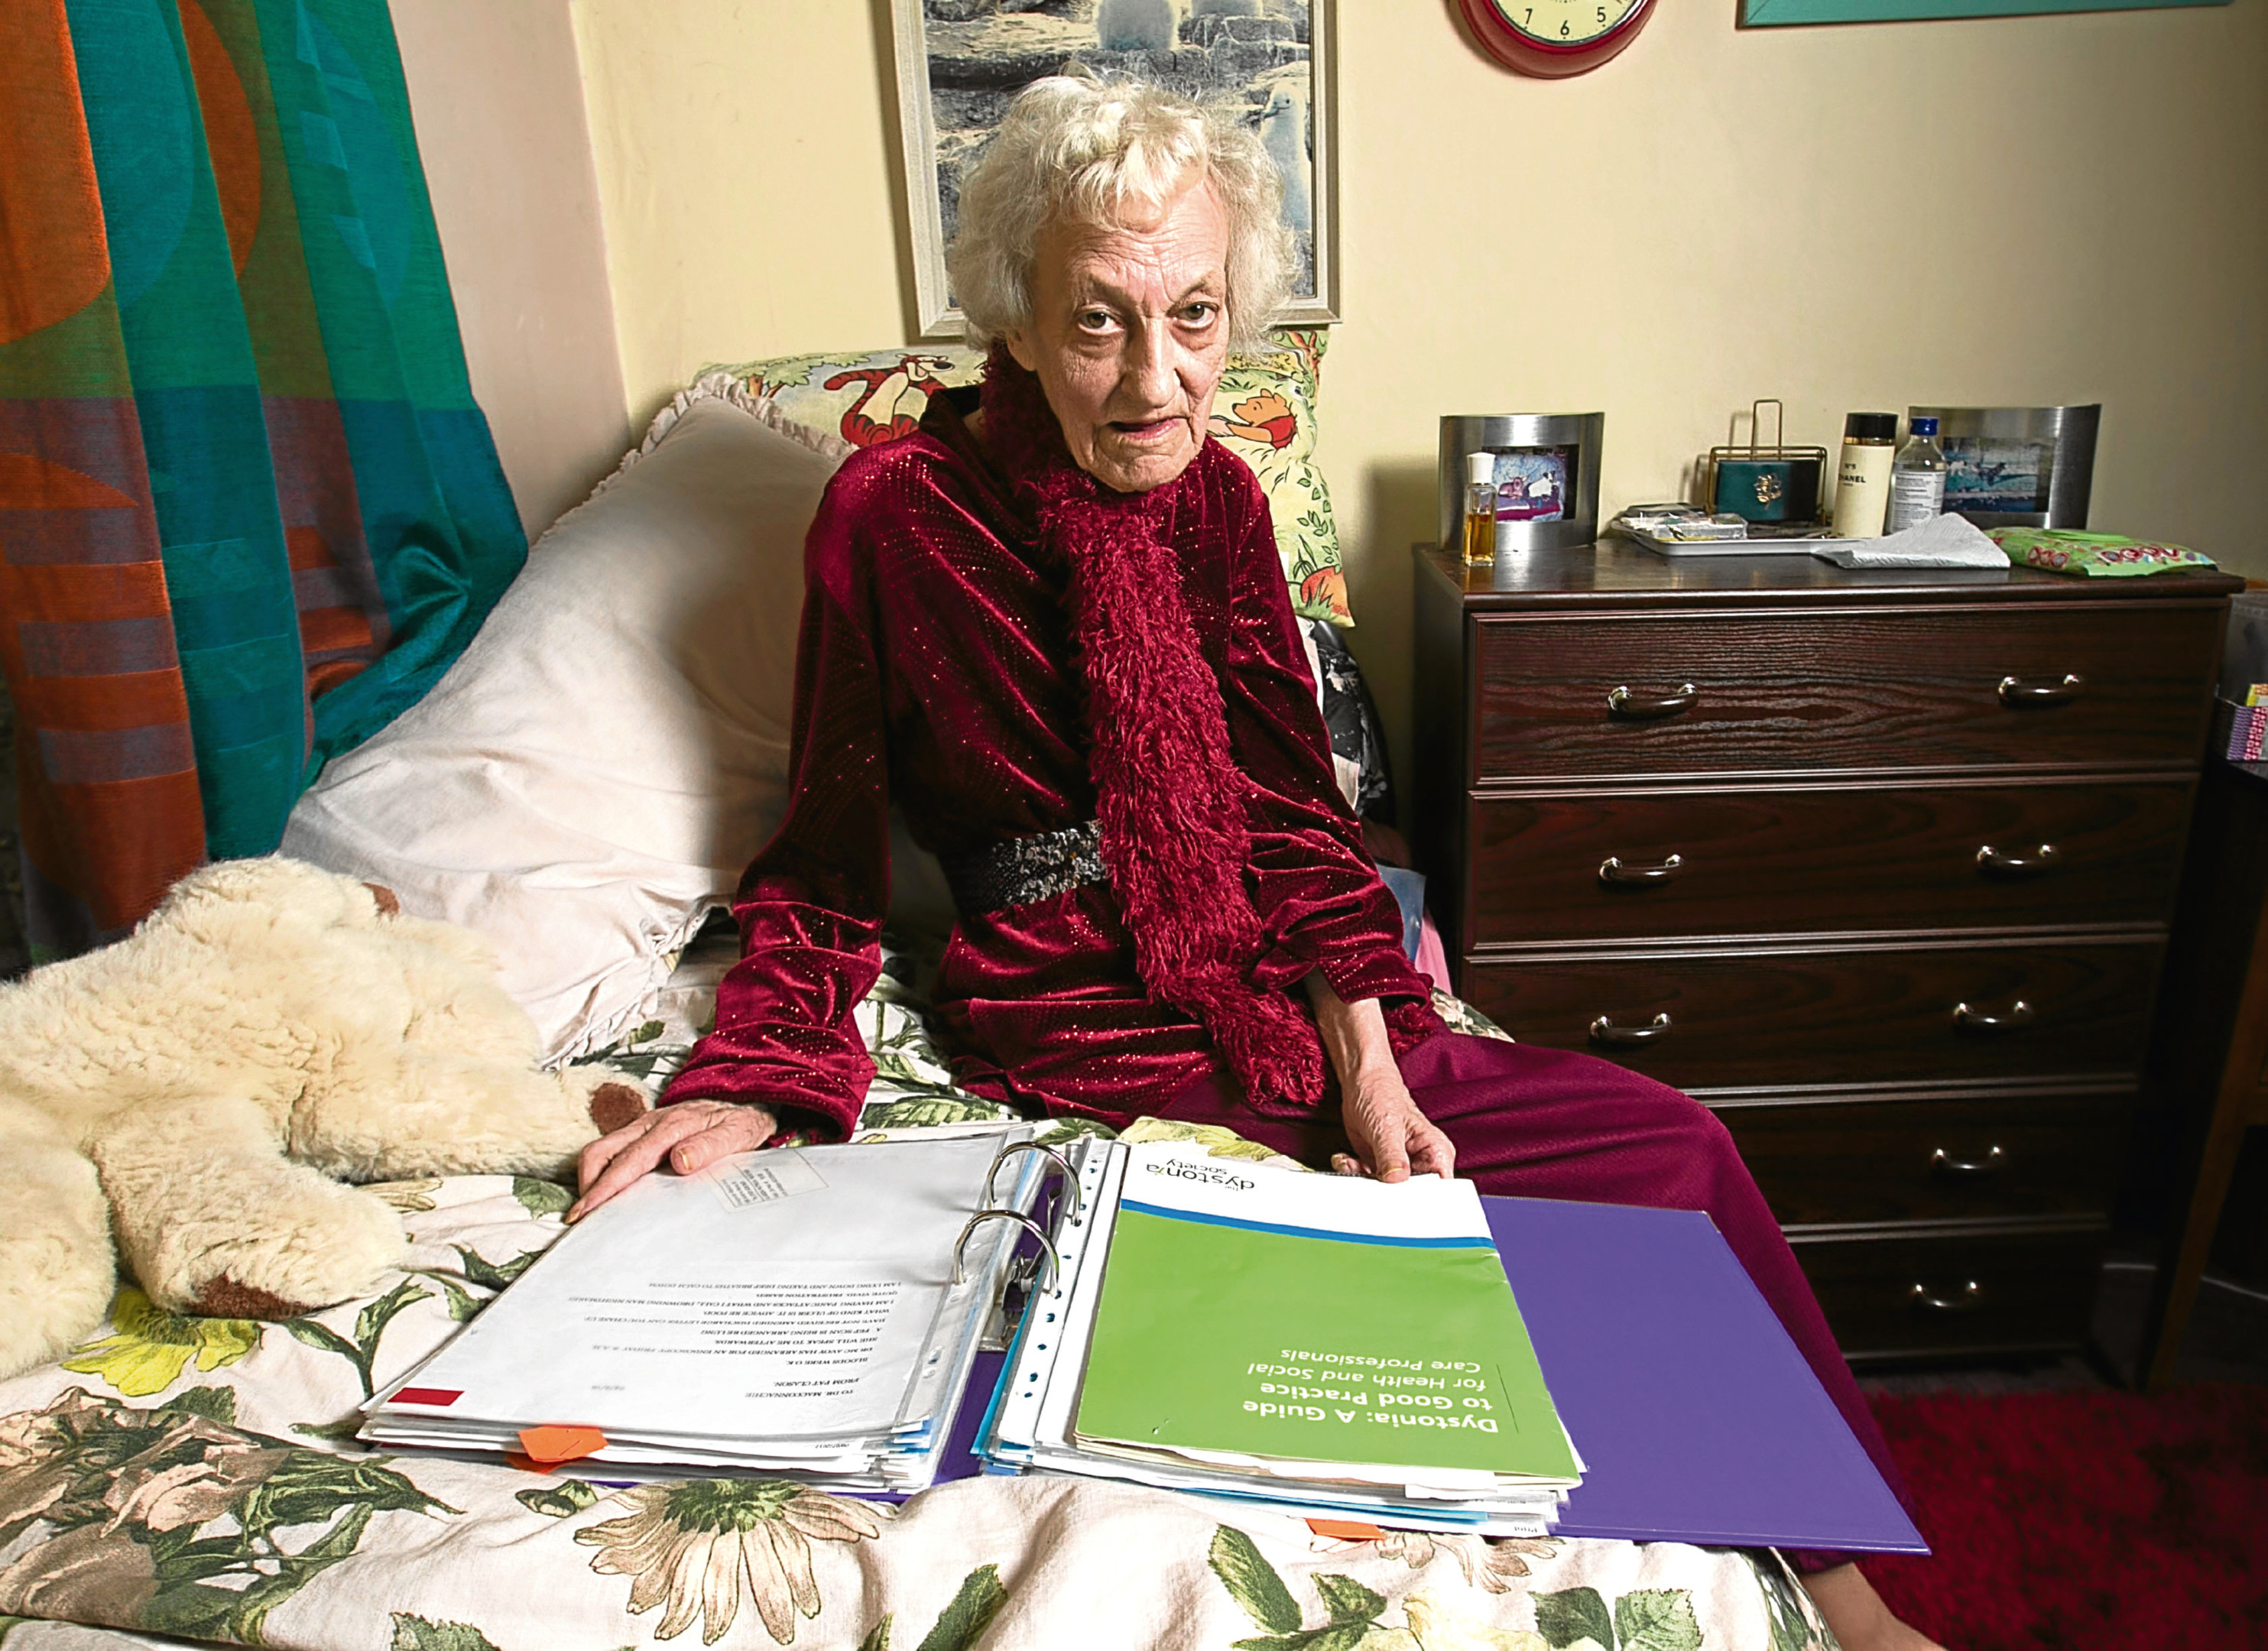 Patricia Clarson says she only found out her condition was terminal in a discharge letter (Chris Austin / DC Thomson)